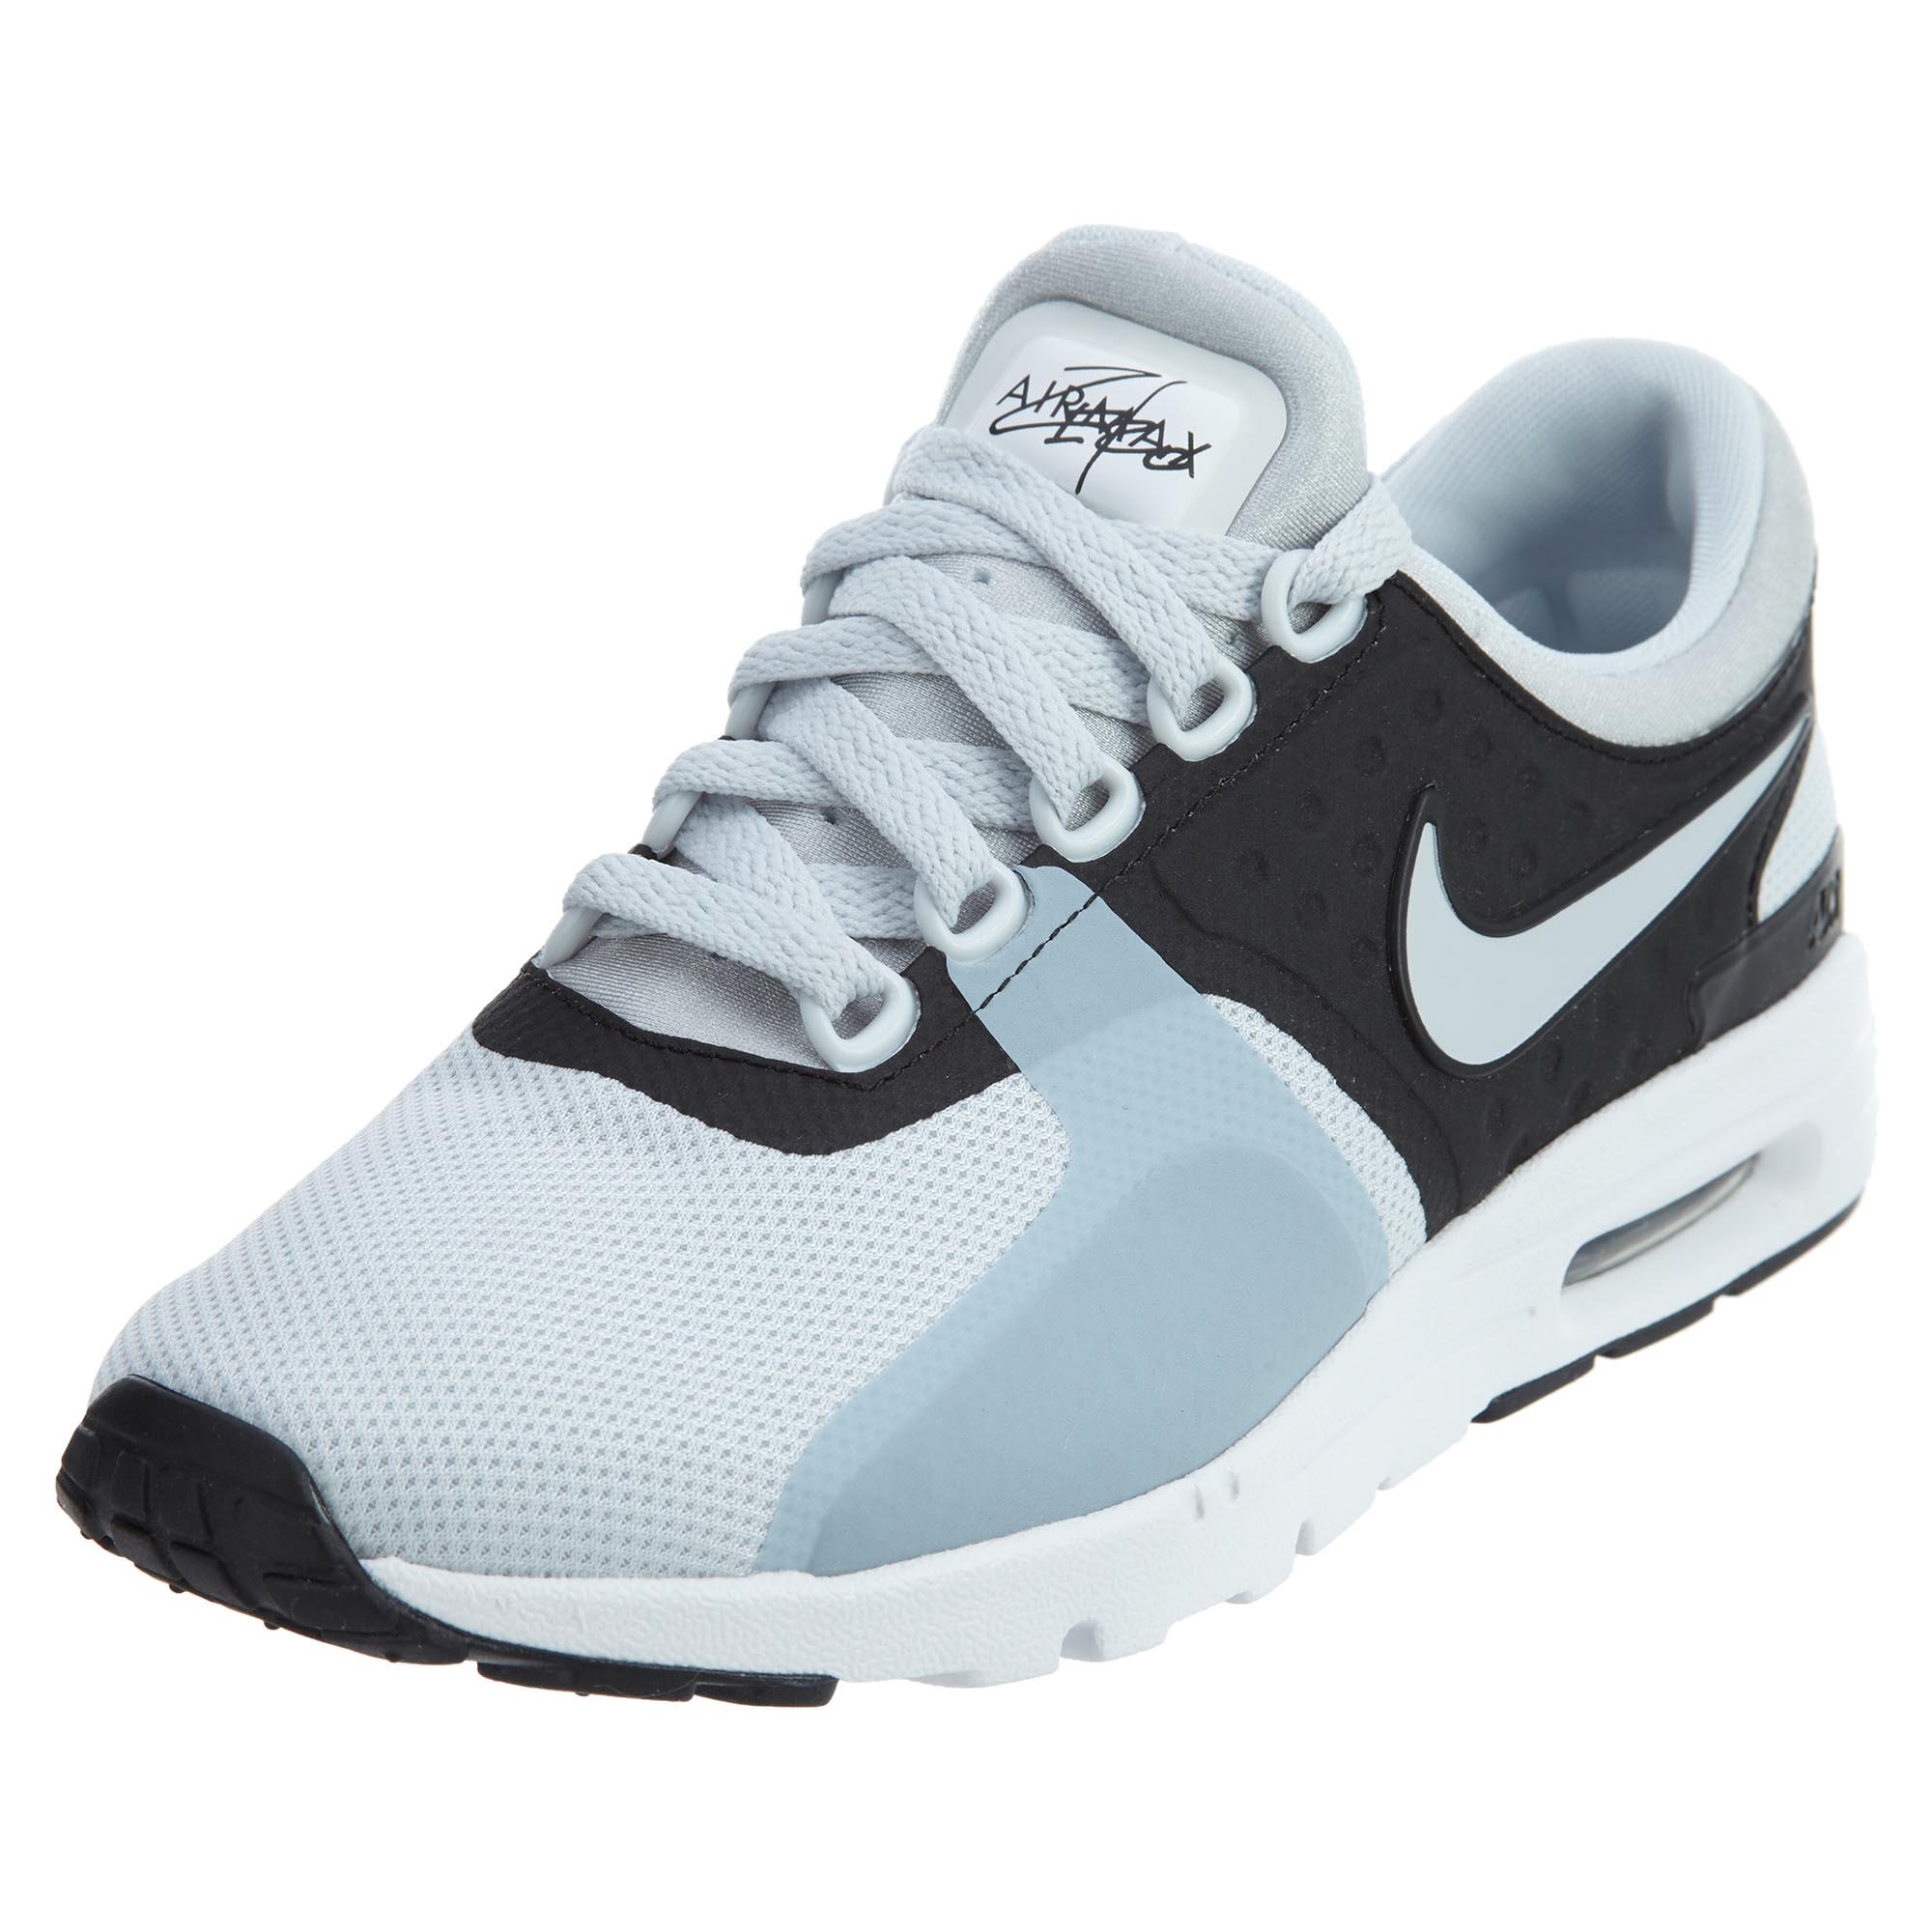 Nike Air Max Zero Womens Style : 857661-007 Size : 8 B(M) US